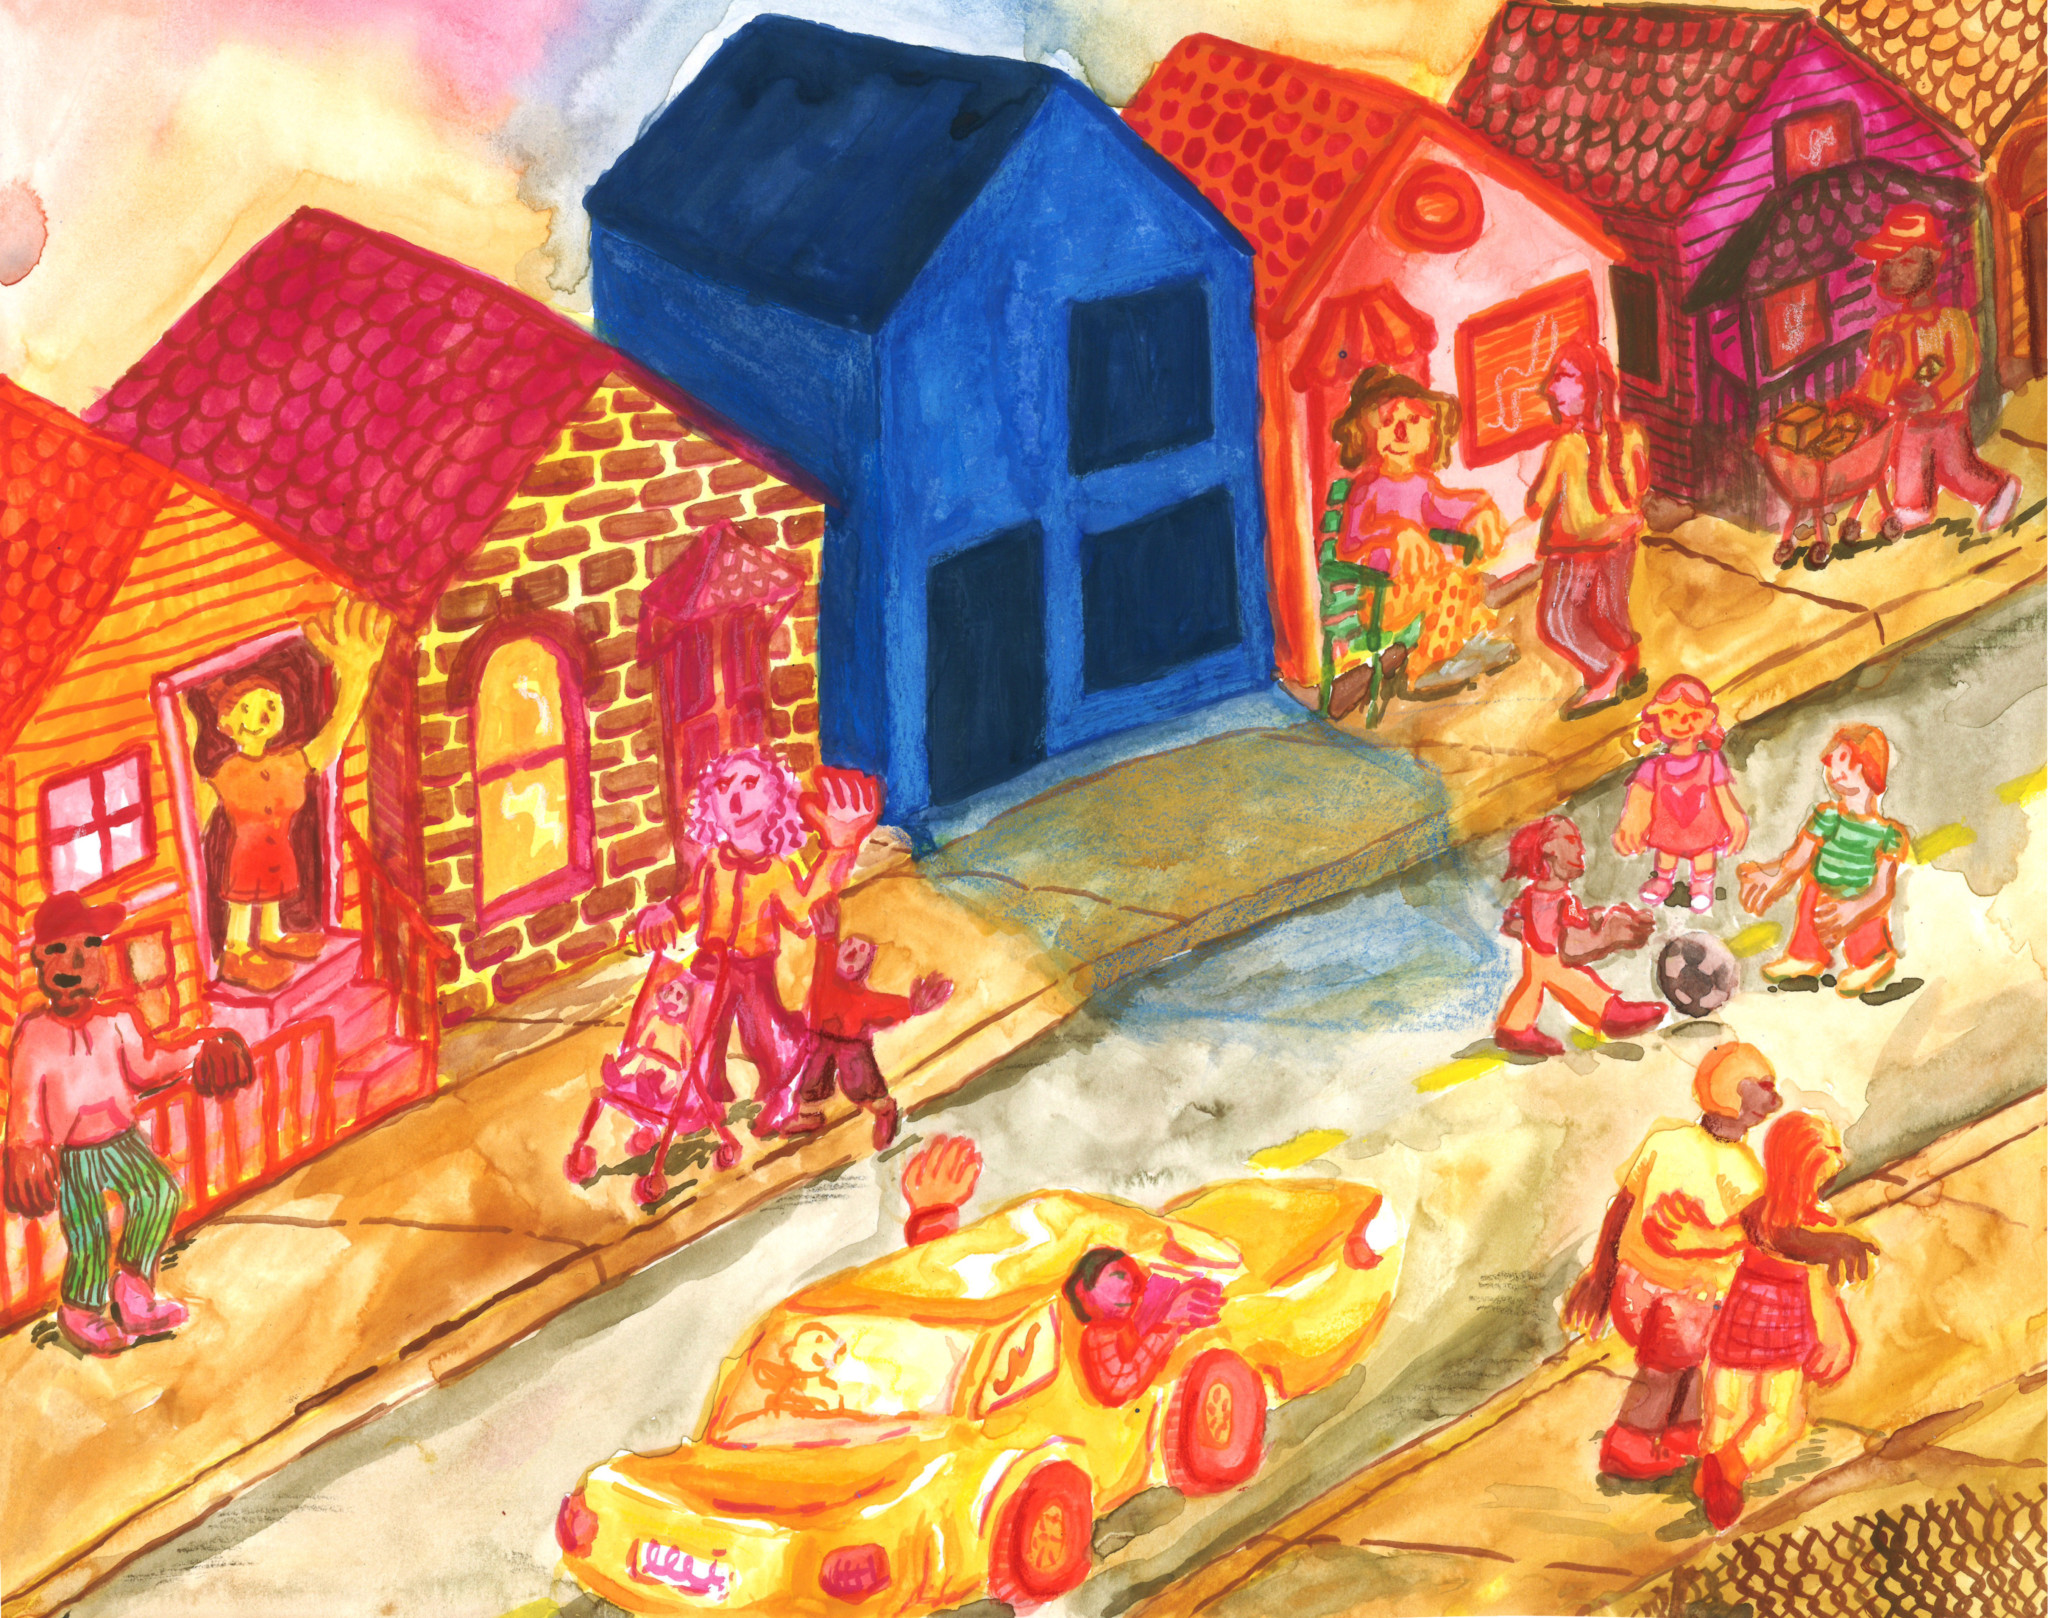 COP Houses. Art credit: Illustration by Emma Punch.